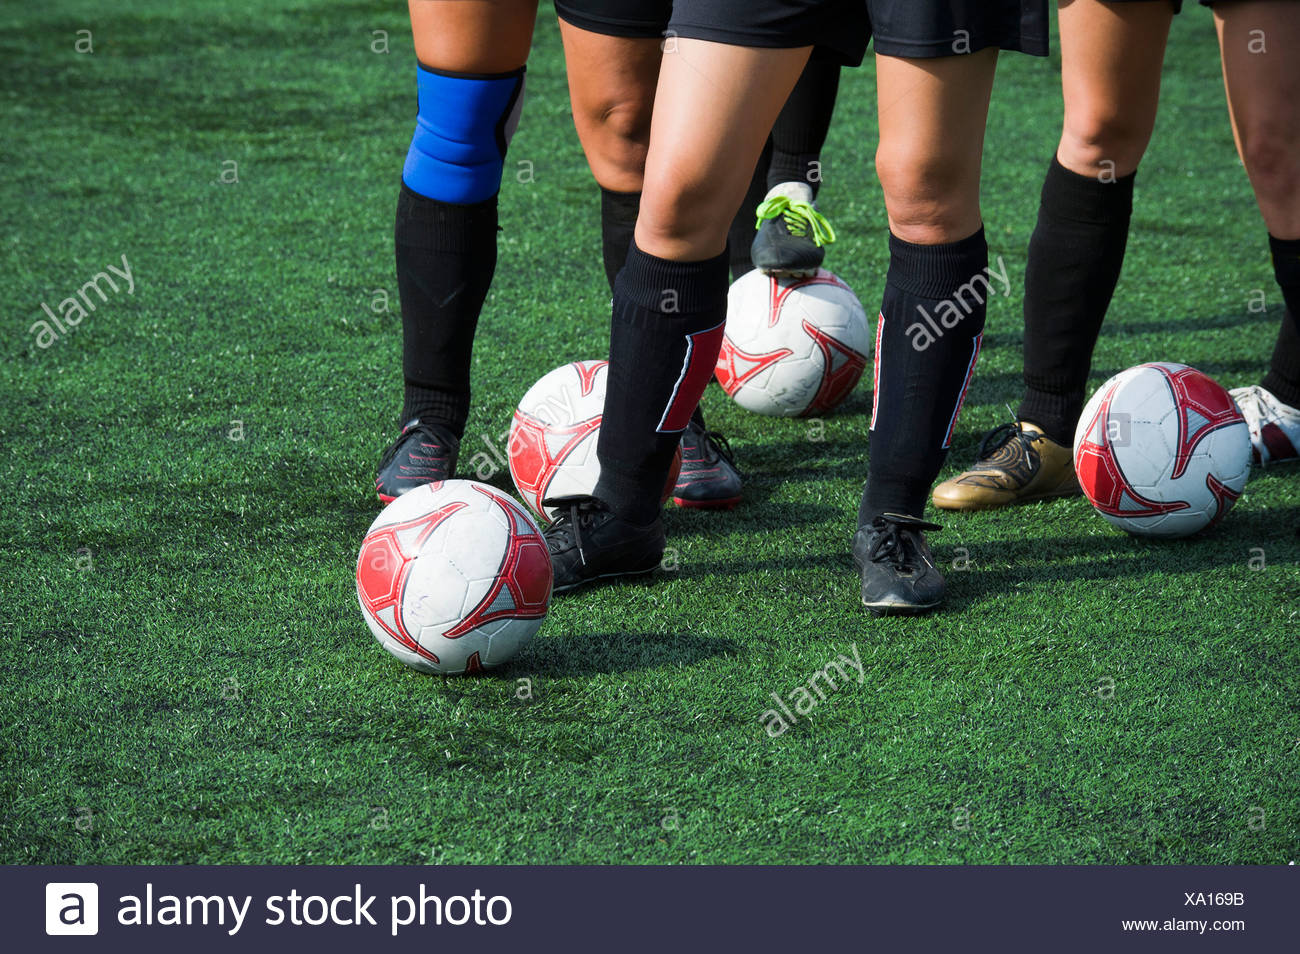 Low section of football players practicing on the grass - Stock Image